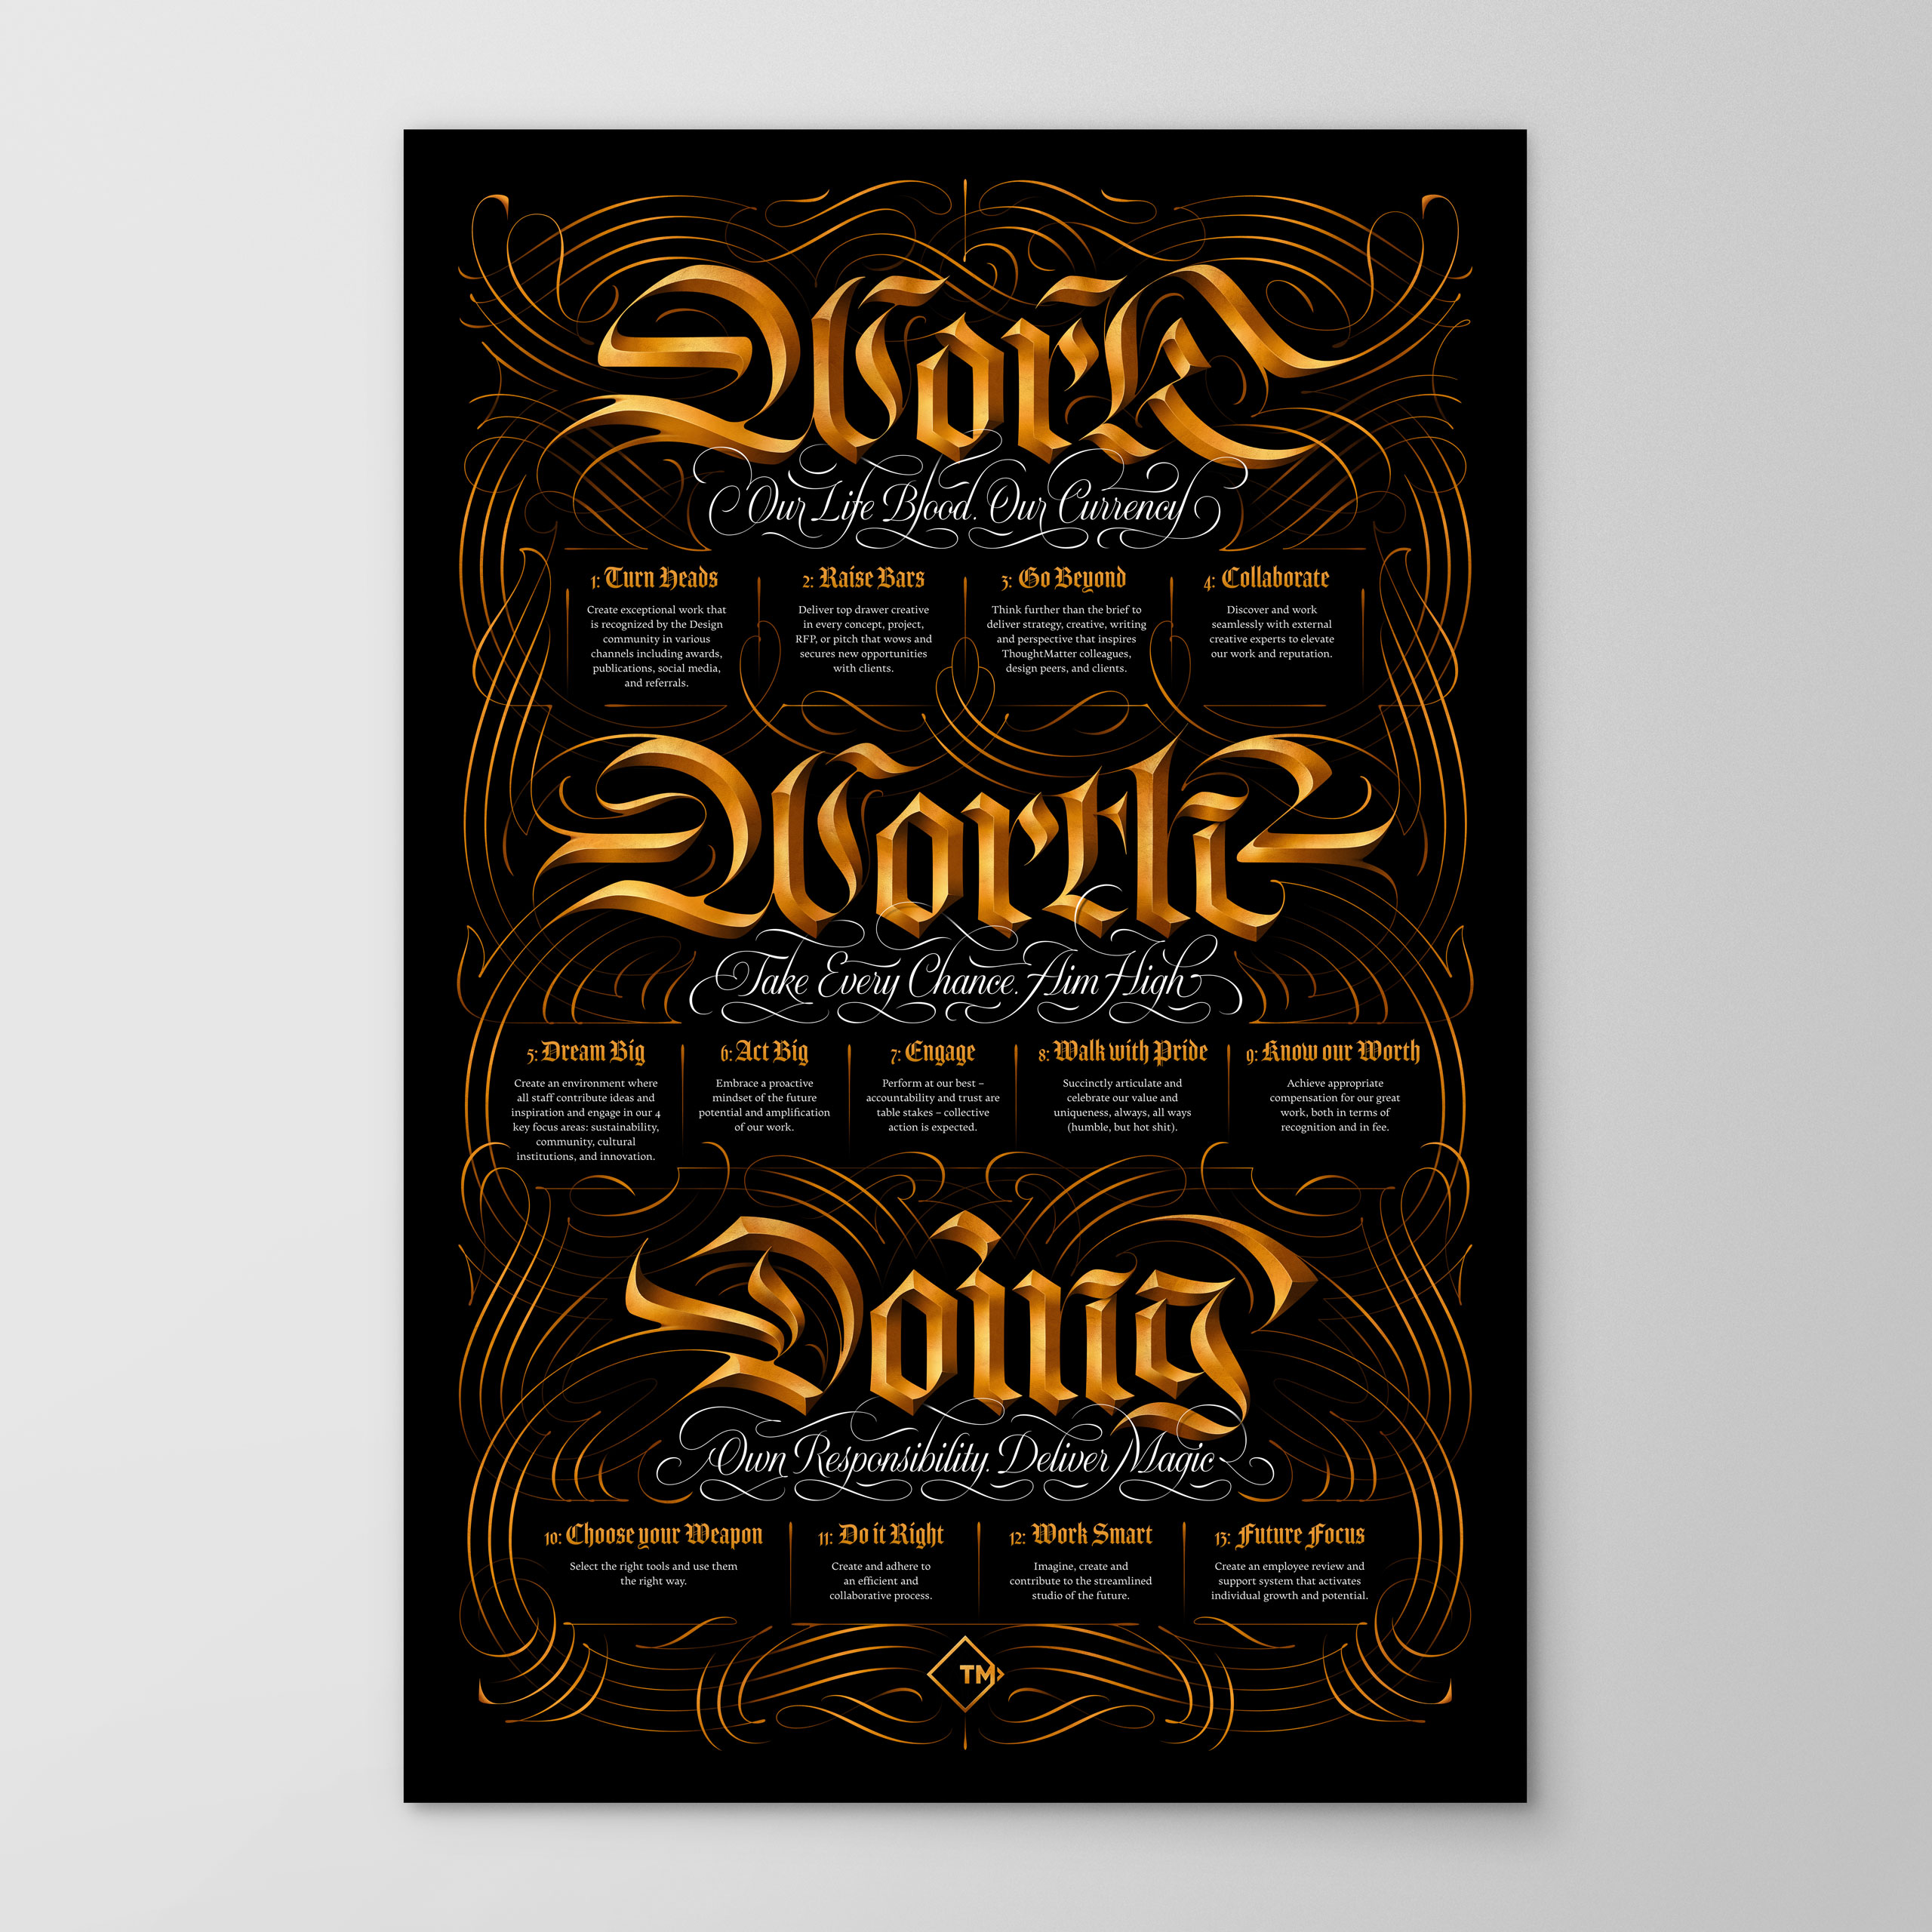 Work Worth Doing Poster, for Thought Matter Studio, Designed by Dan Forster